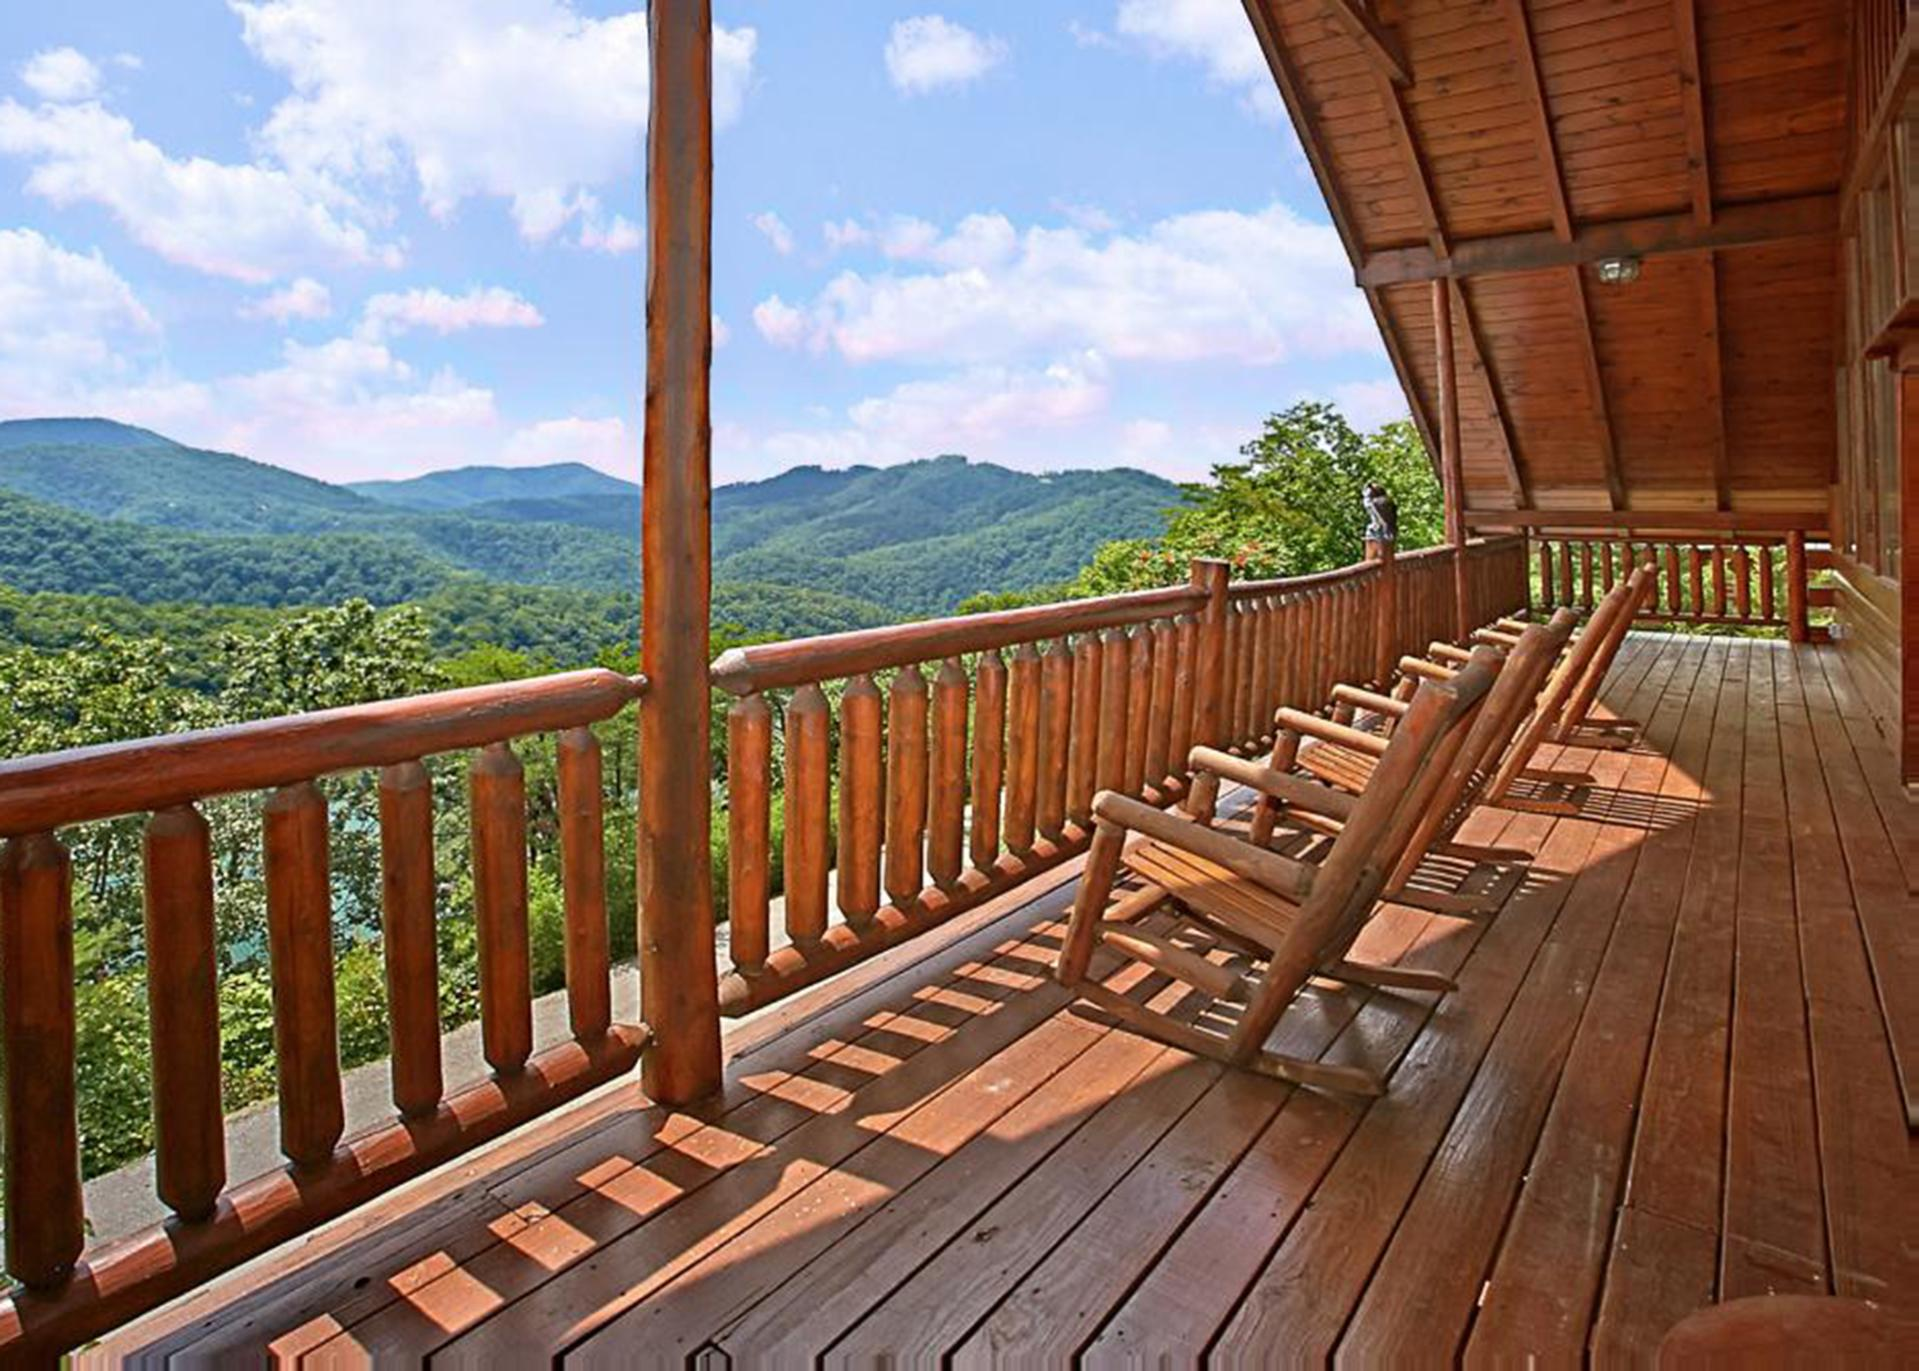 Rocking chairs and a porch swing complete the experience on our covered back deck.